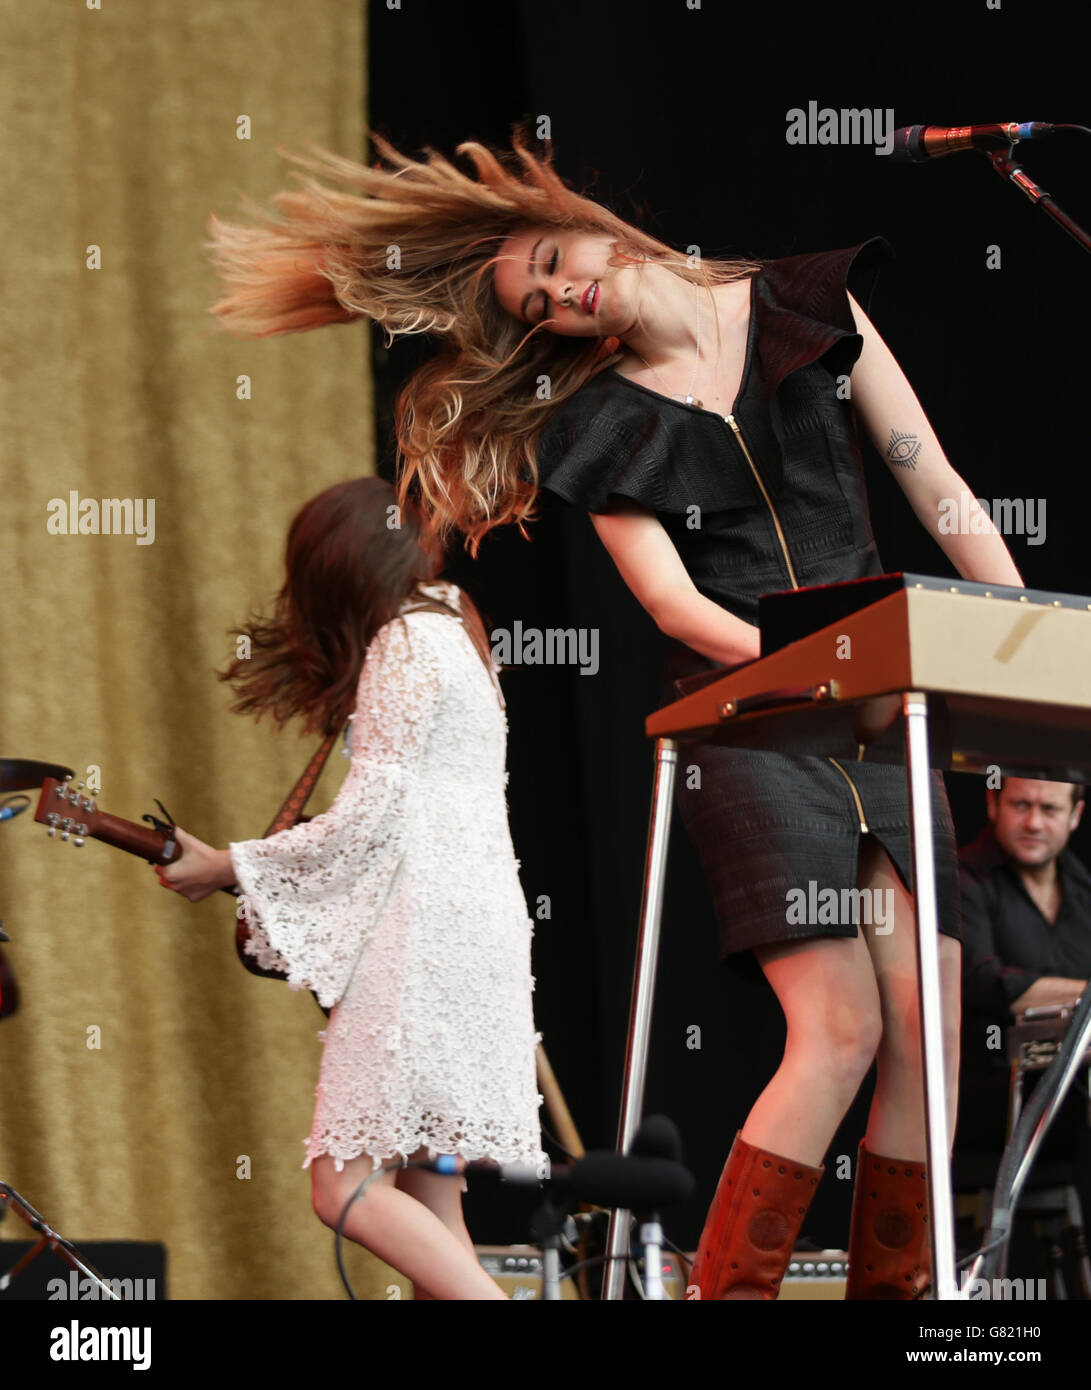 Isle of Wight Festival - Stock Image